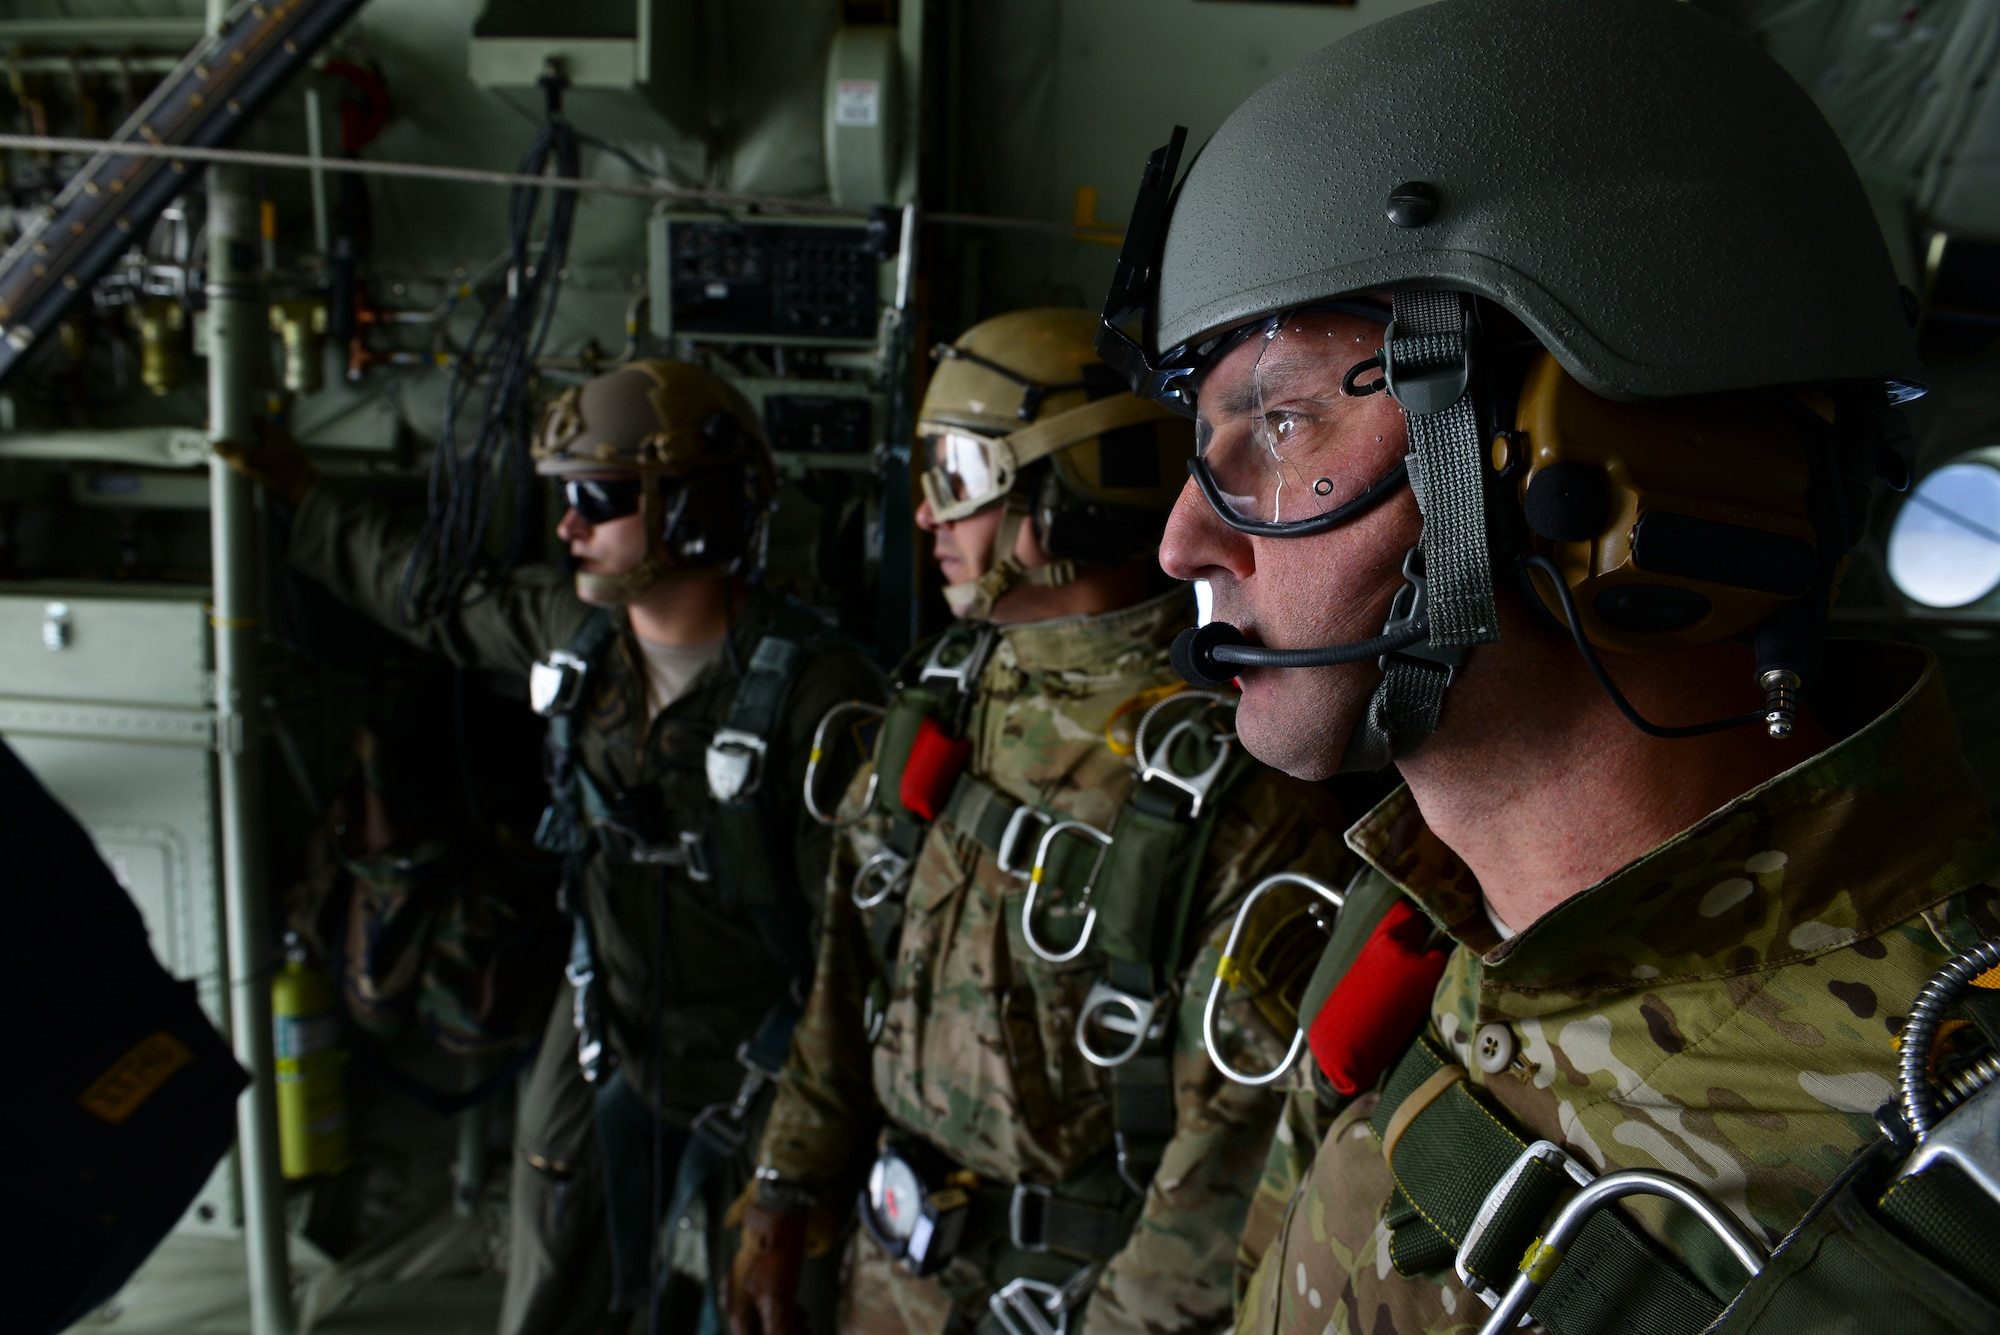 Operators from U.S. Special Operations Command -- Europe prepare for a high-altitude, low-opening jump May 30, 2015, over Mont Saint-Michele, France. The paratroopers jumped from an MC-130J Commando II assigned to the 67th Special Operations Squadron from as high as 13,000 feet to commemorate the 71st anniversary of the liberation of France during World War II. (U.S. Air Force photo by Staff Sgt. Micaiah Anthony)